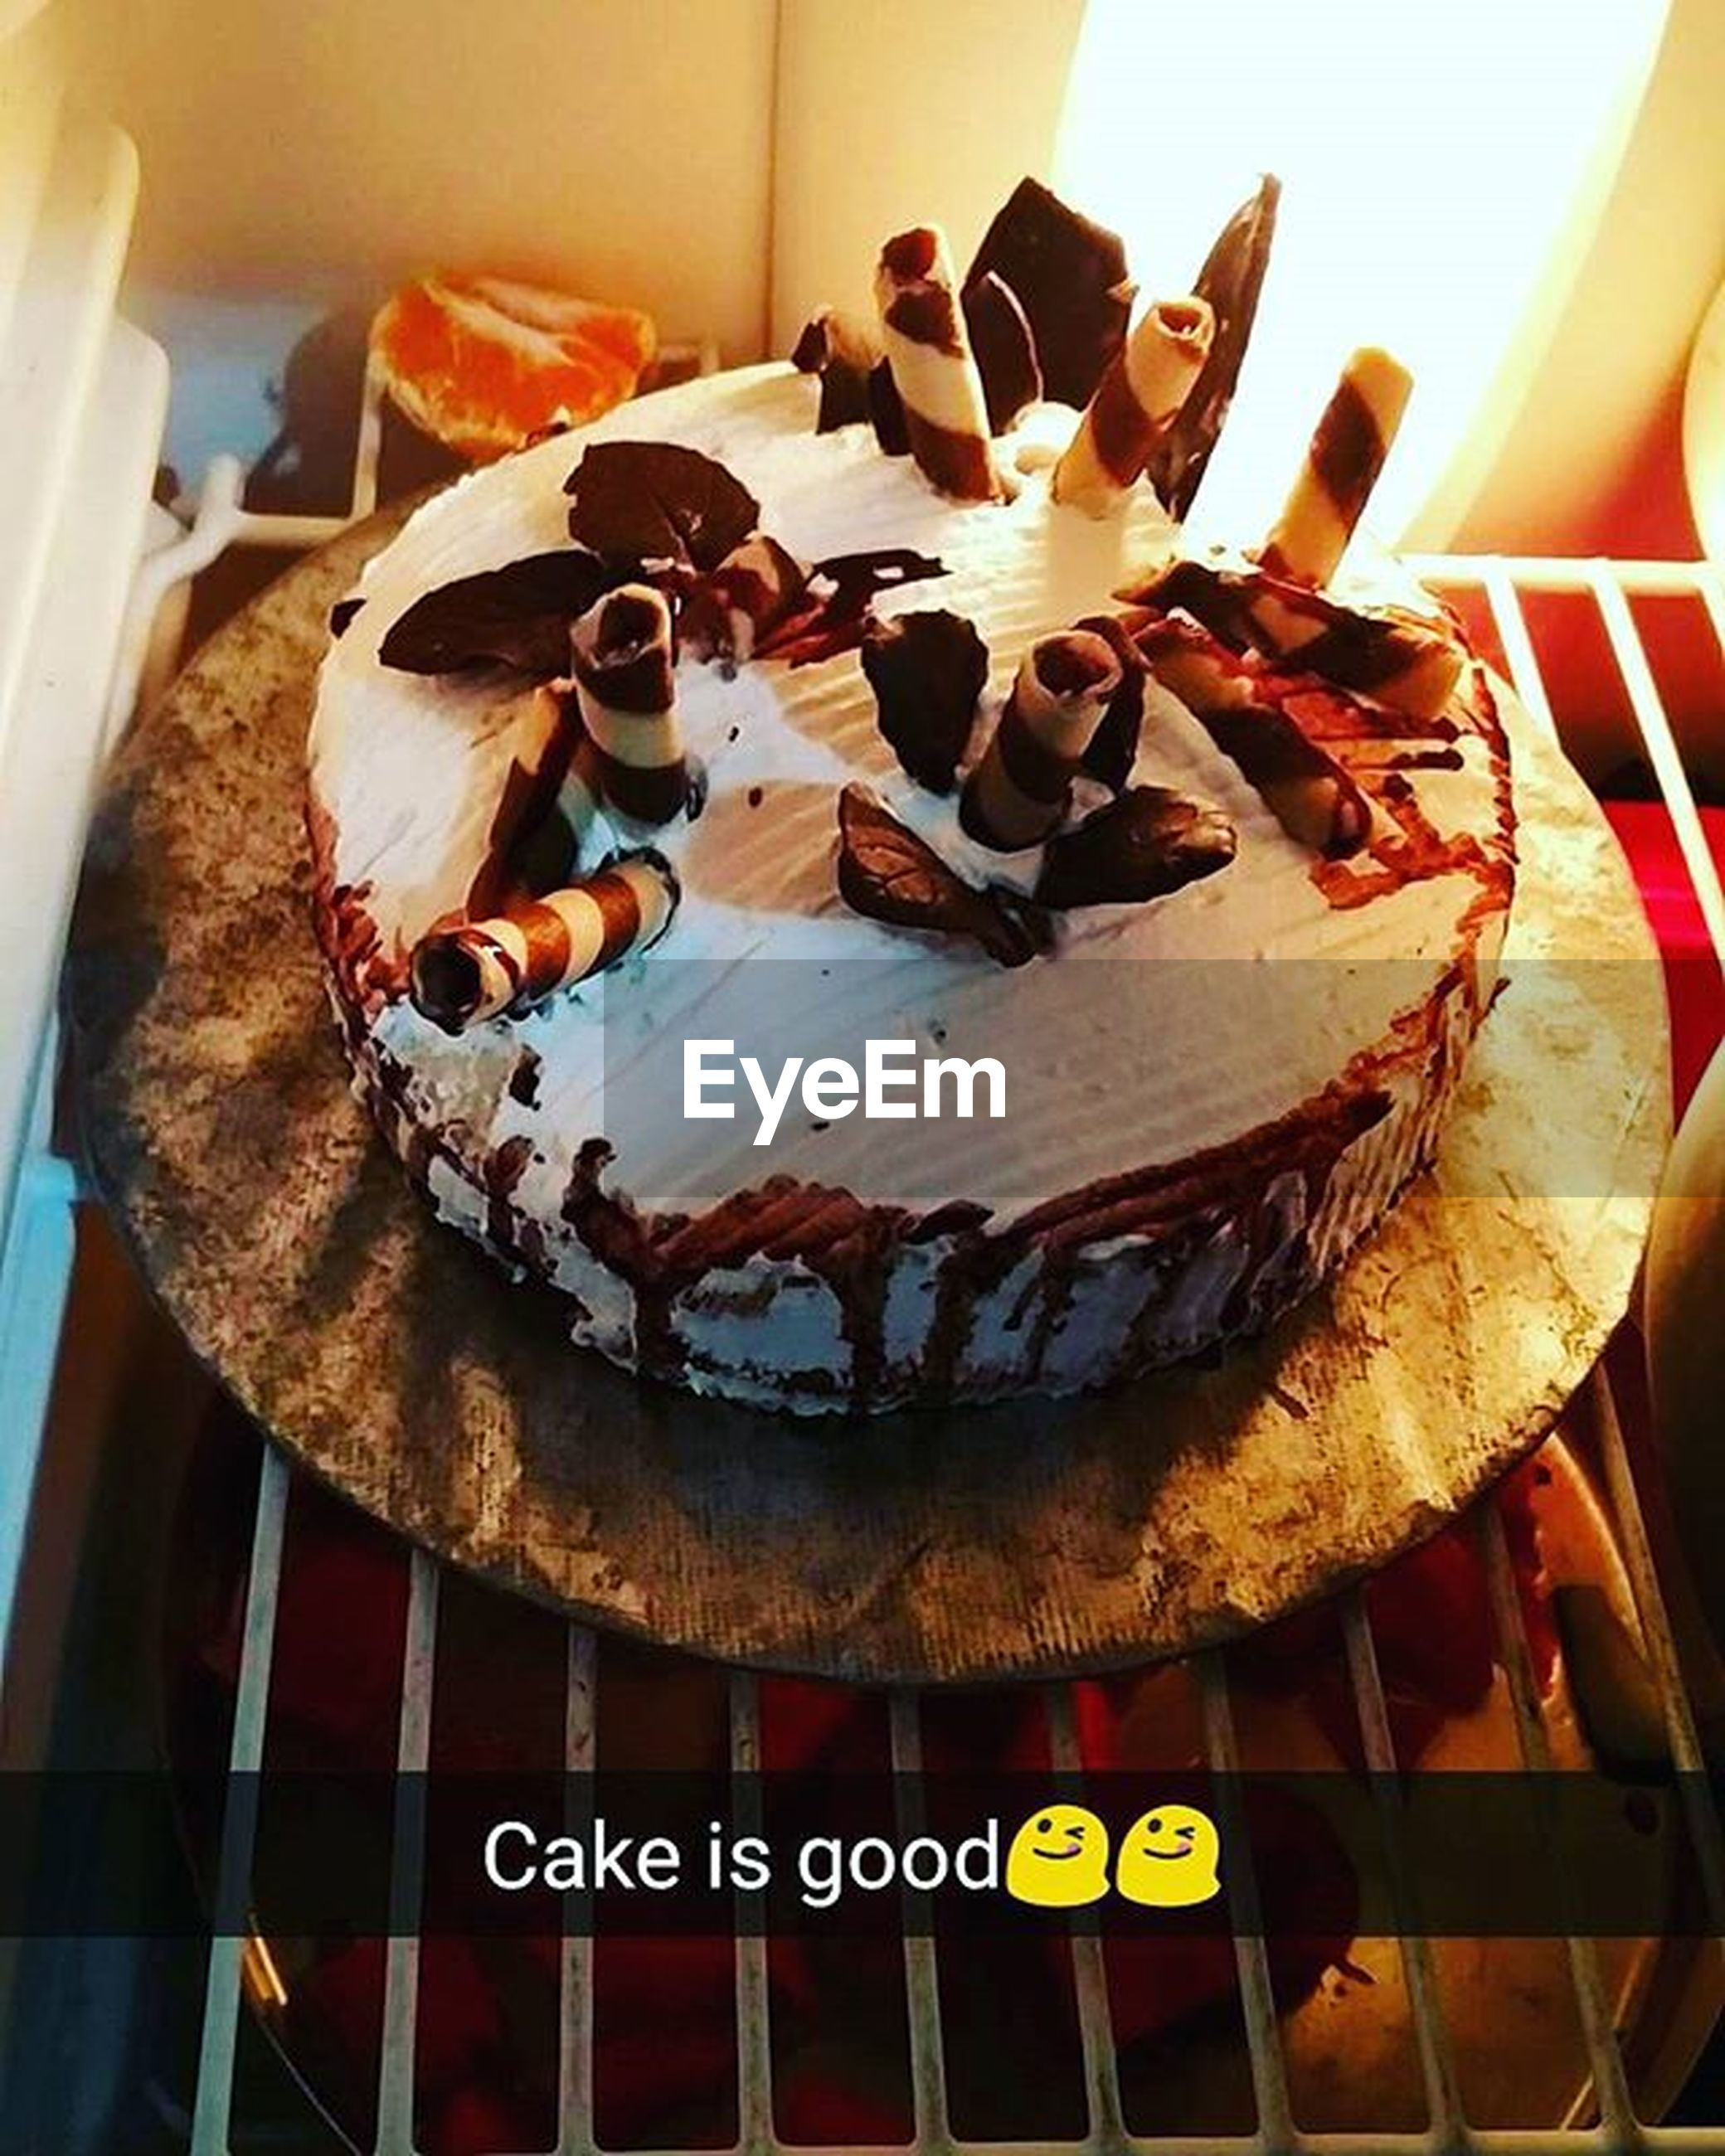 indoors, food and drink, text, food, sweet food, table, western script, indulgence, dessert, cake, freshness, plate, still life, unhealthy eating, close-up, ready-to-eat, high angle view, no people, communication, decoration